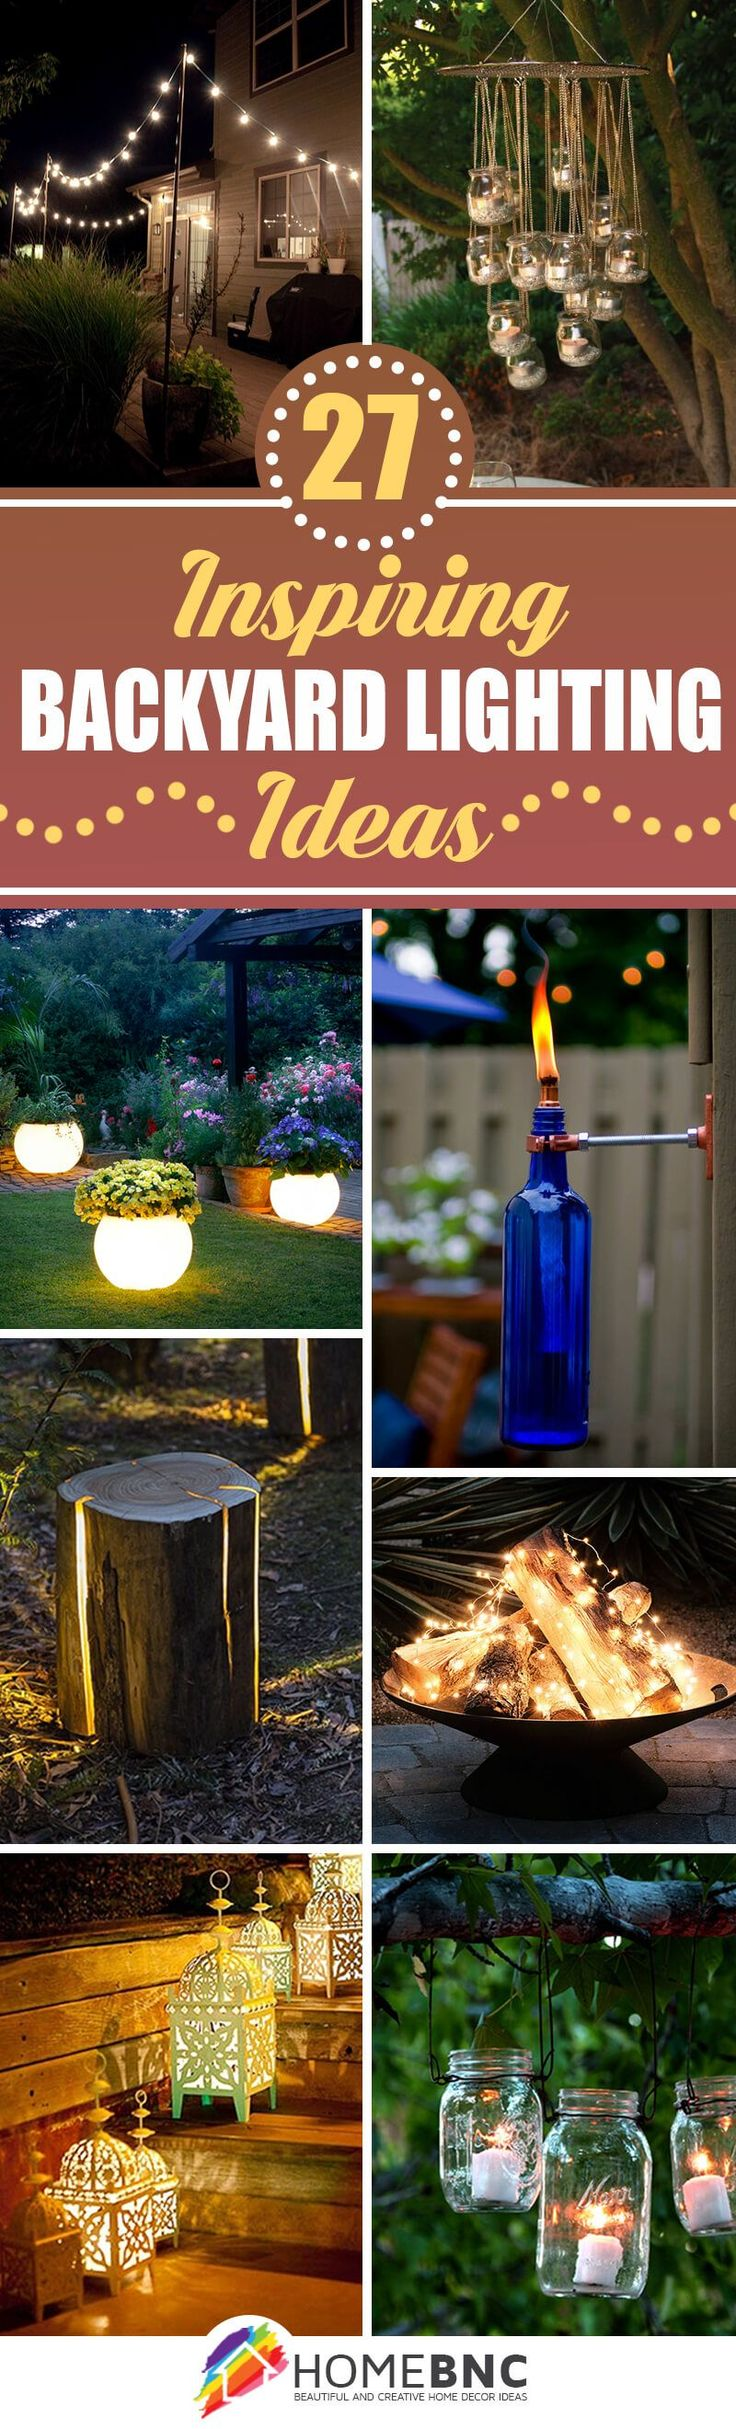 Backyard+Lighting+Ideas